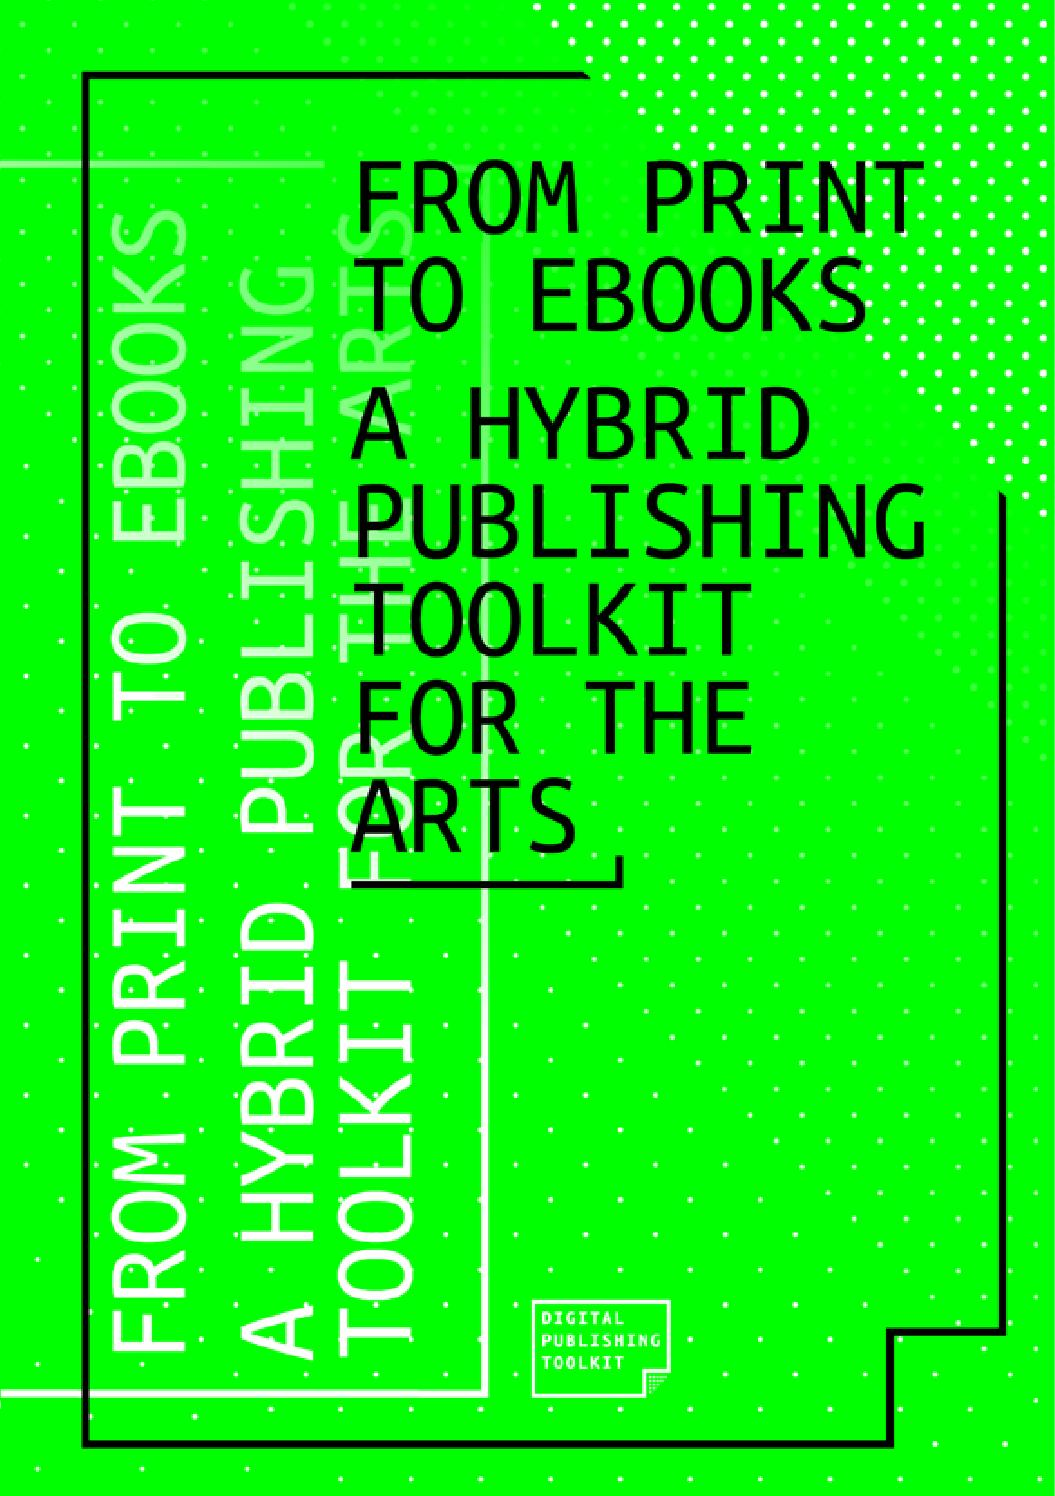 From Print to Ebooks: A Hybrid Publishing Toolkit for the